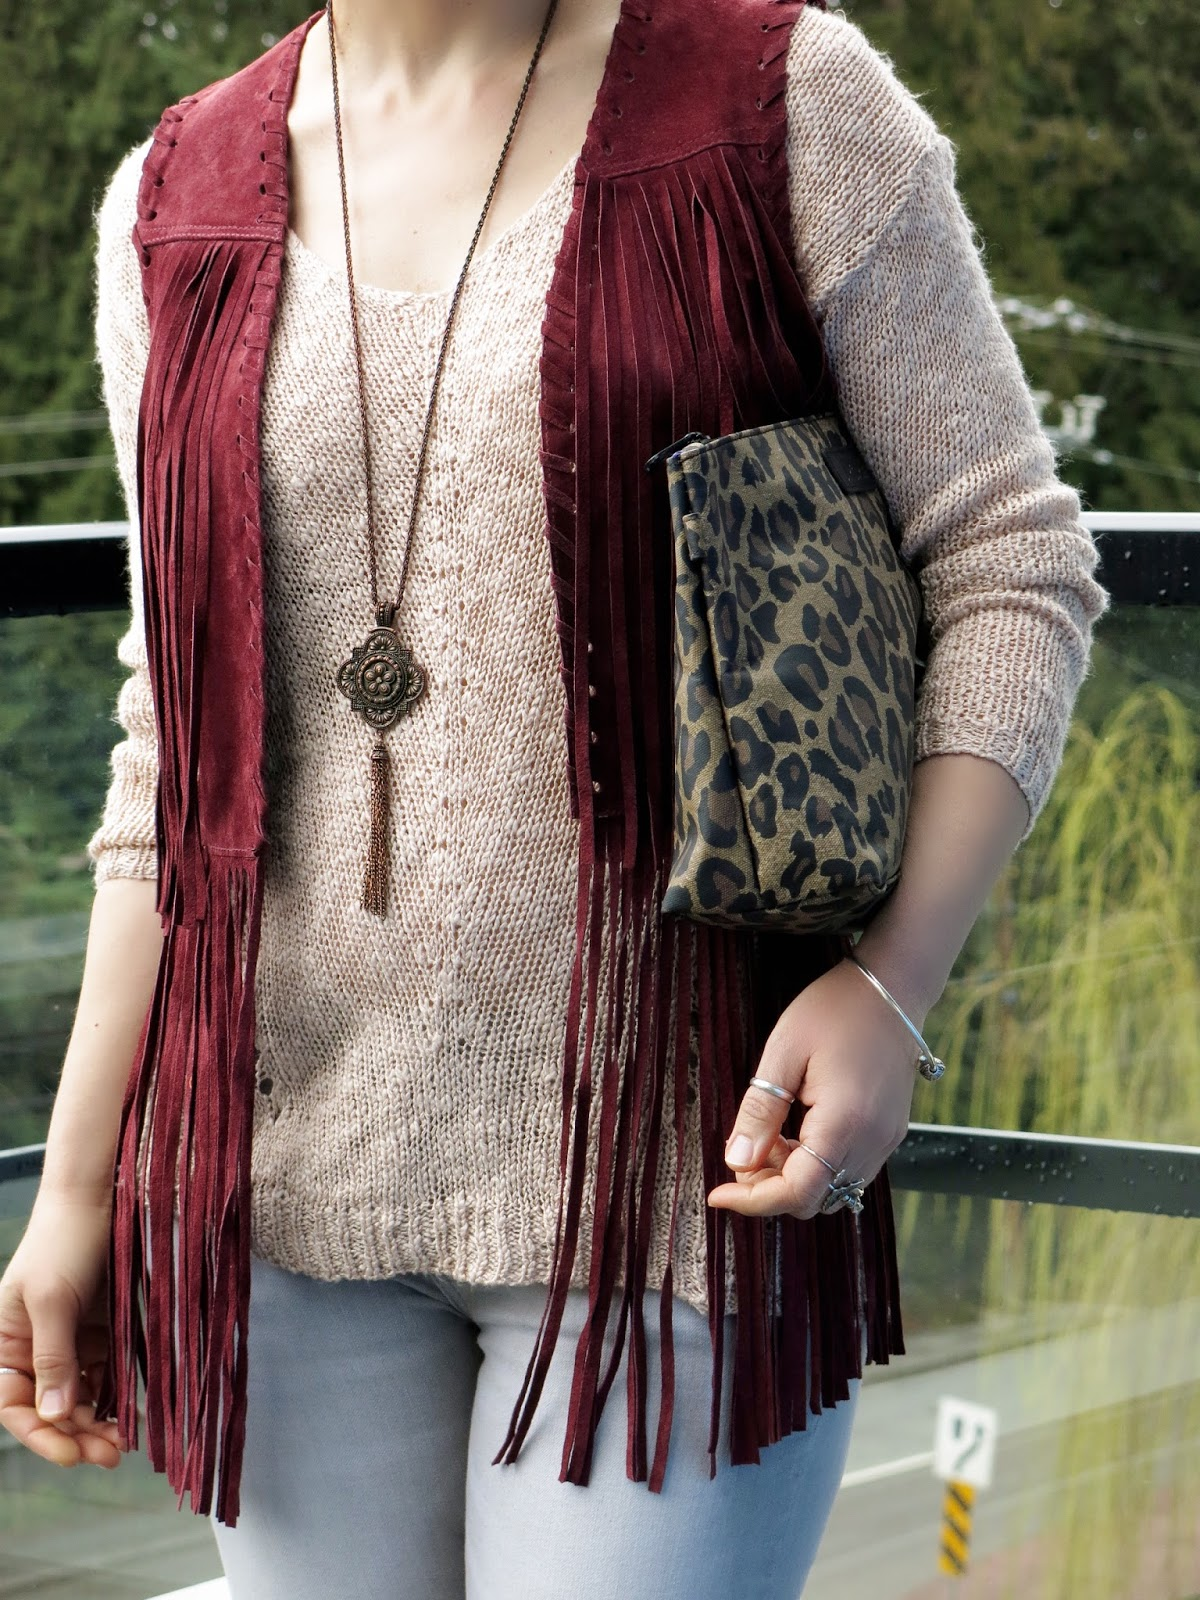 v-neck sweater, fringy maroon suede vest, and leopard clutch